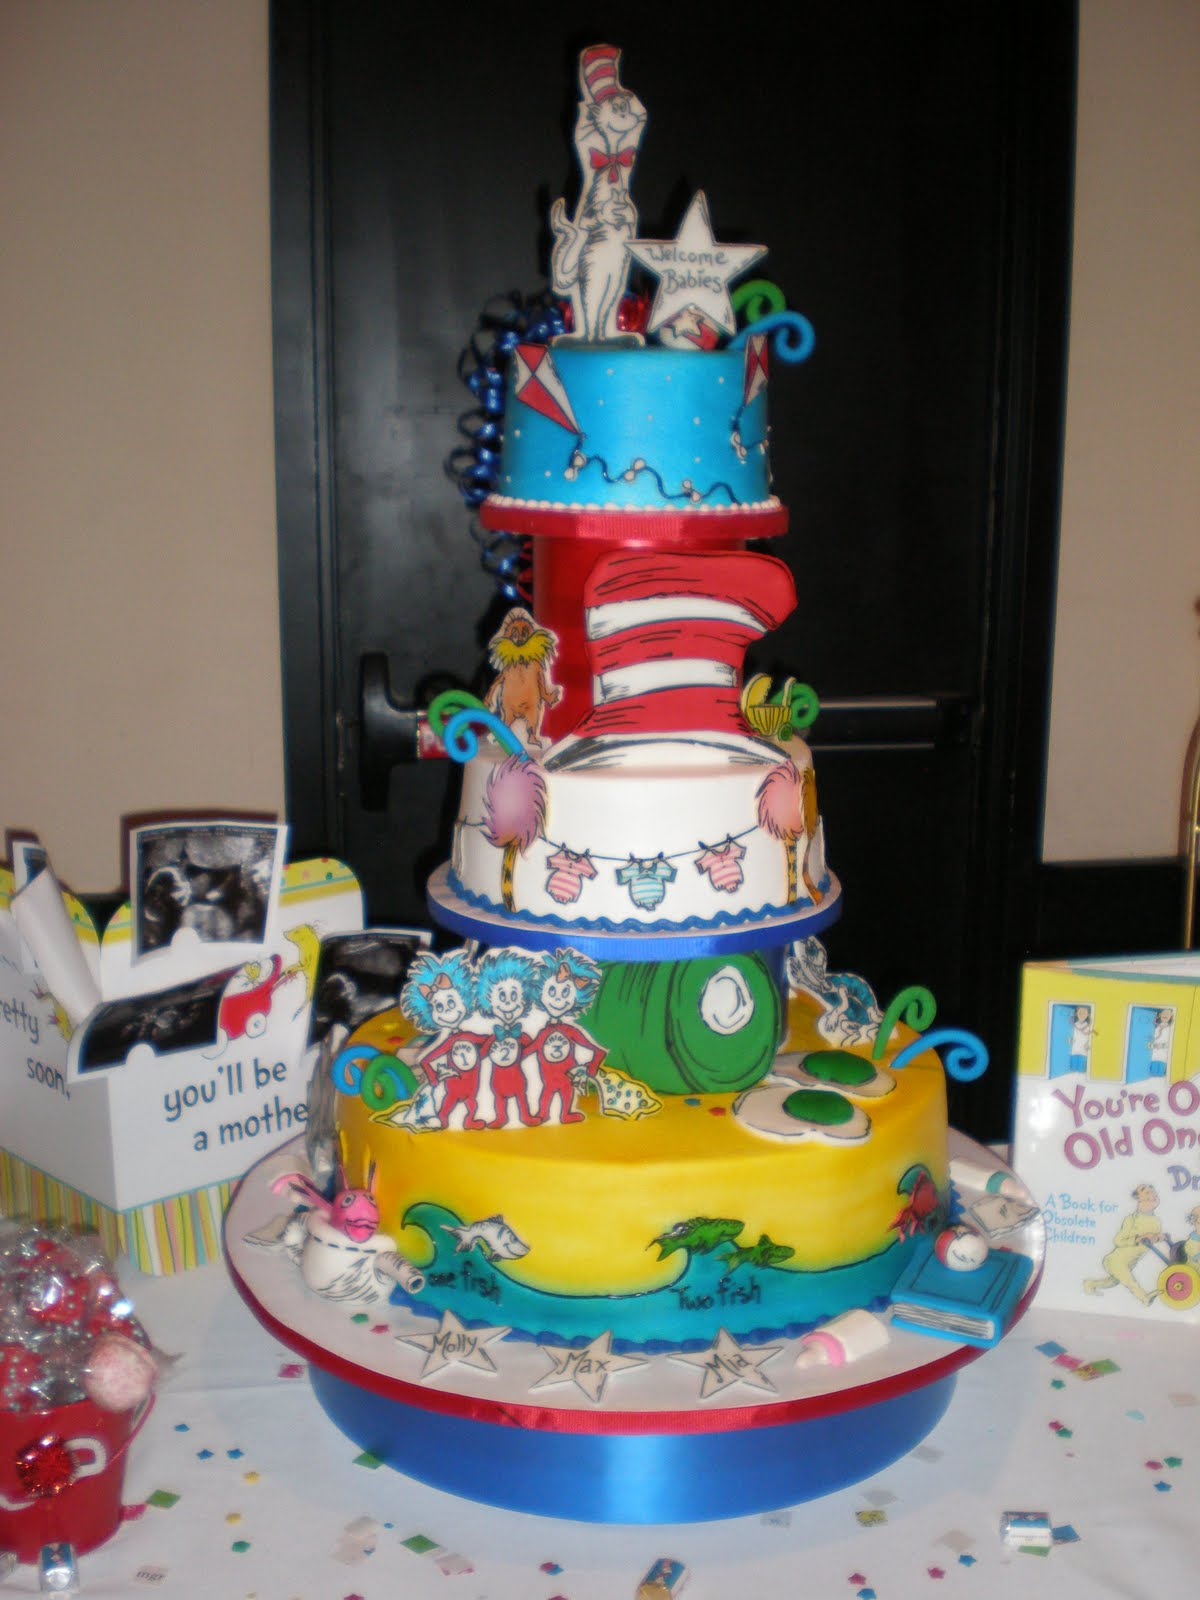 The Amazing Cake By Rama! She Really Is The Best!